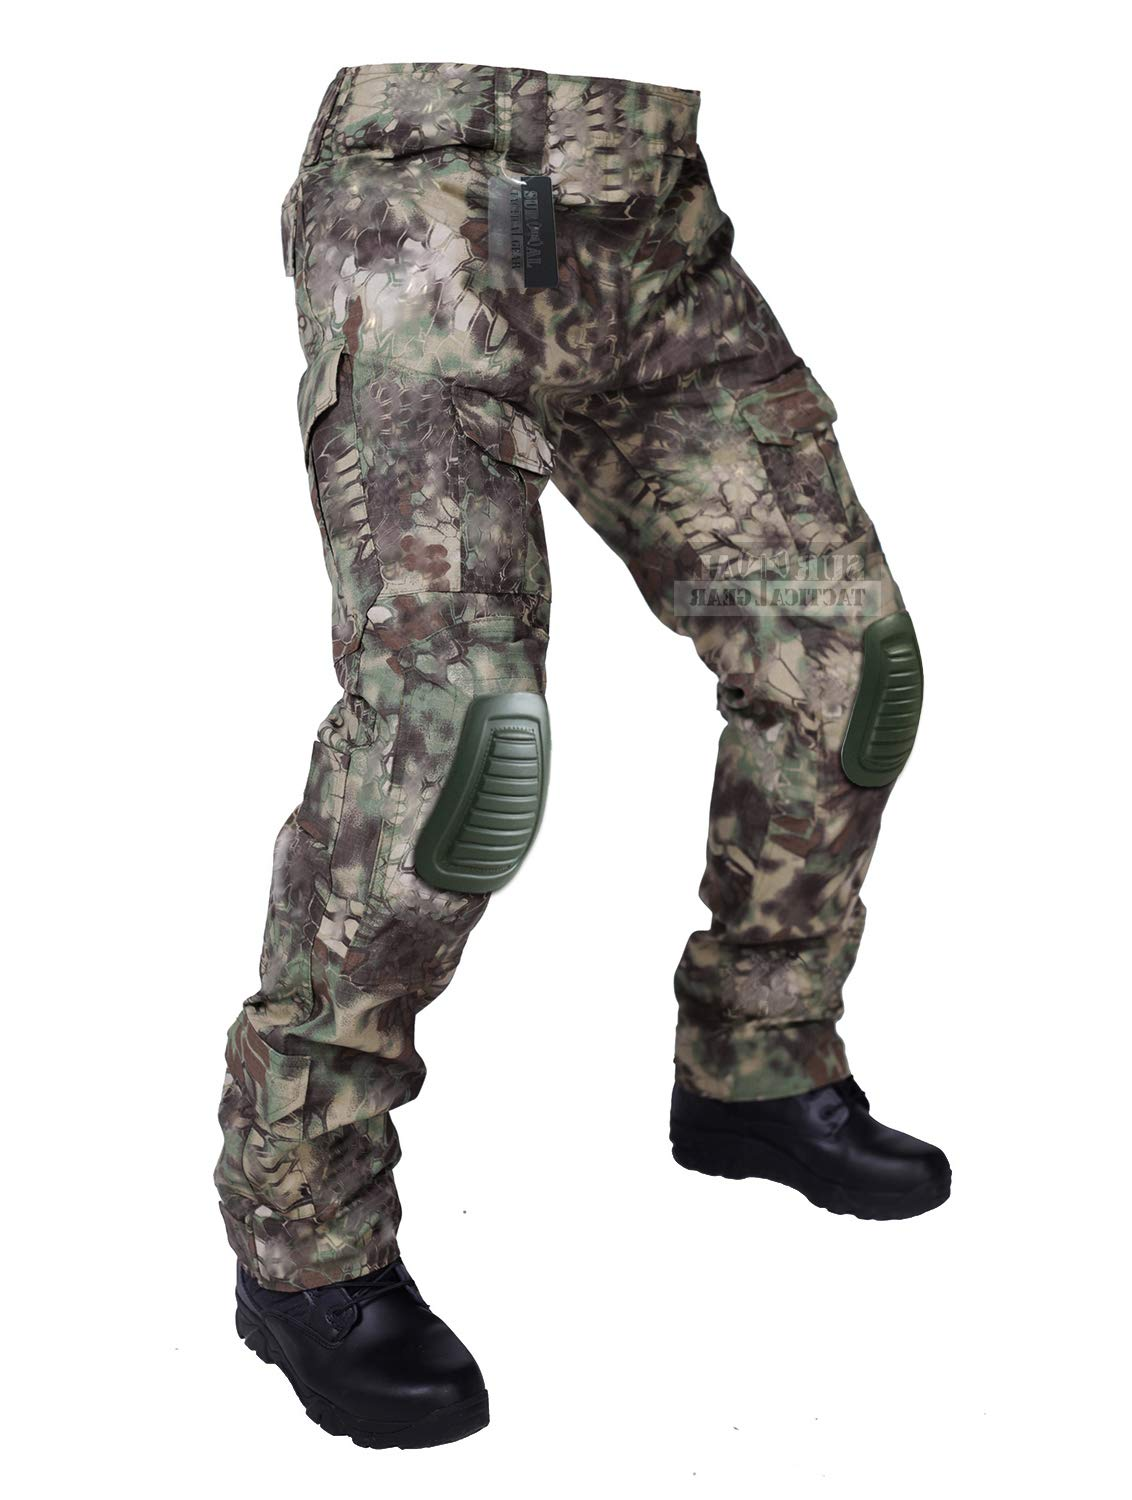 ZAPT Tactical Pants with Knee Pads Airsoft Camping Hiking Hunting BDU Ripstop Combat Pants 13 Kinds Army Camo Uniform Military Trousers (Mandrake Camo, L36) by ZAPT